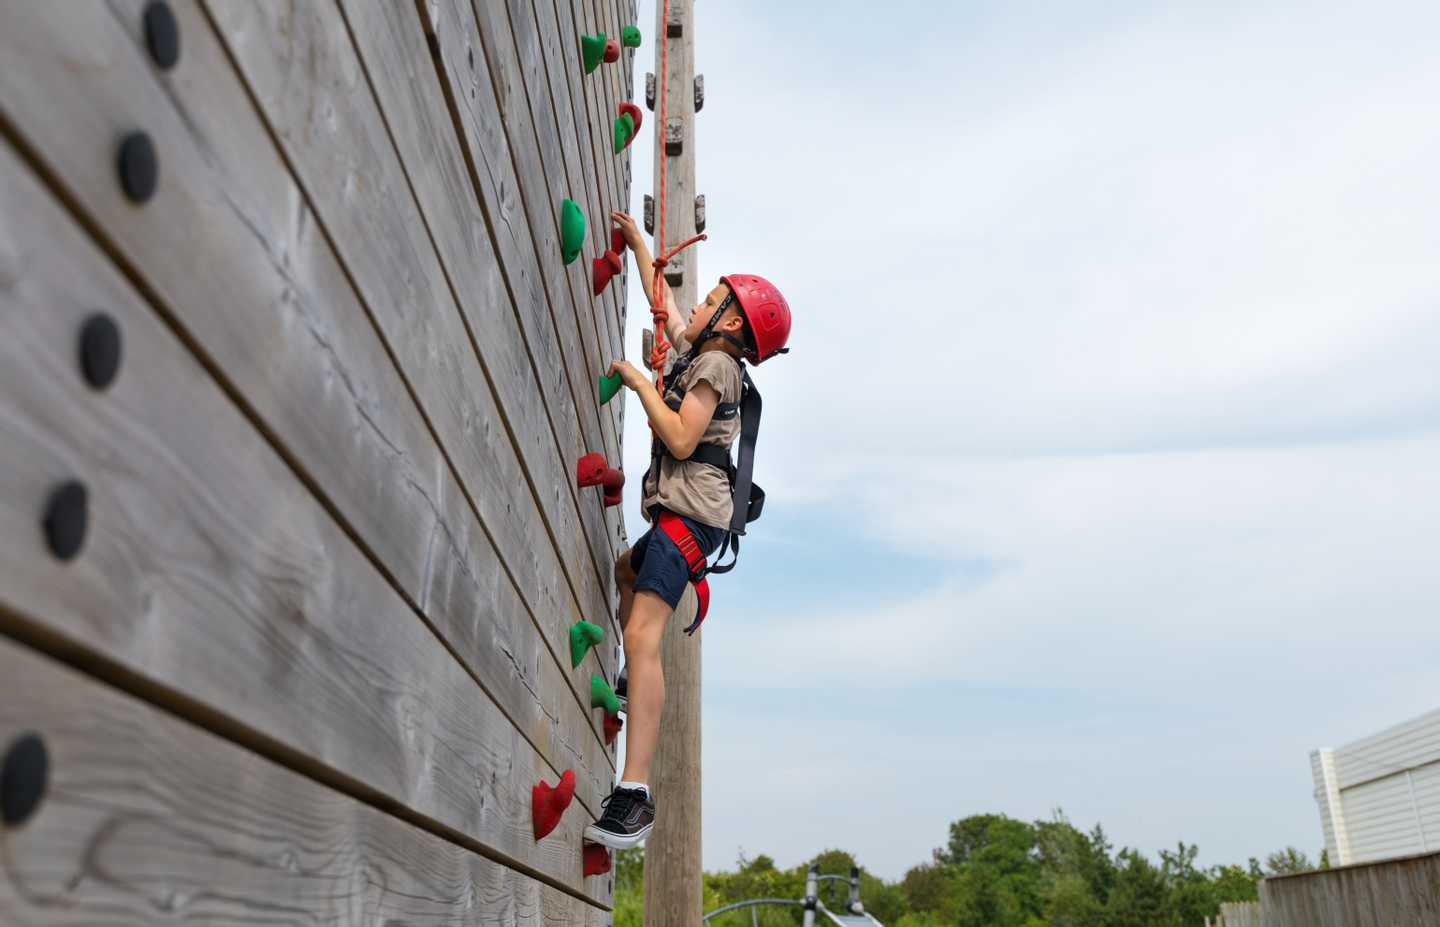 Child climbing on the outdoor climbing wall